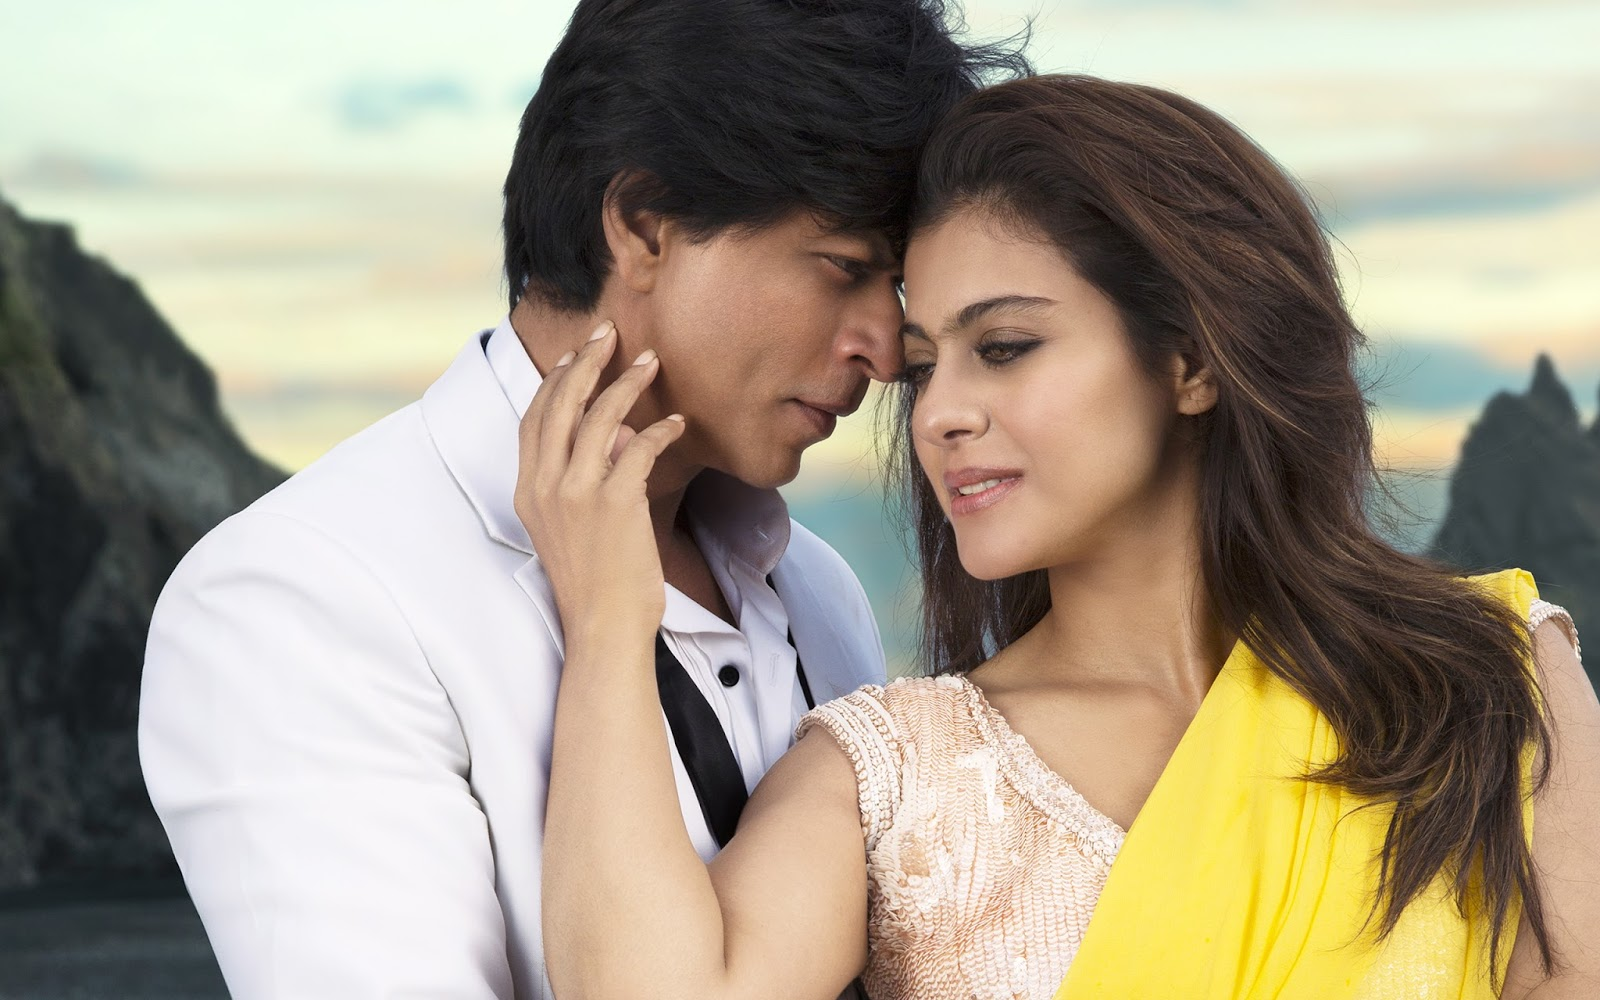 beautiful shahrukh khan and kajol wallpaper - beautiful desktop hd